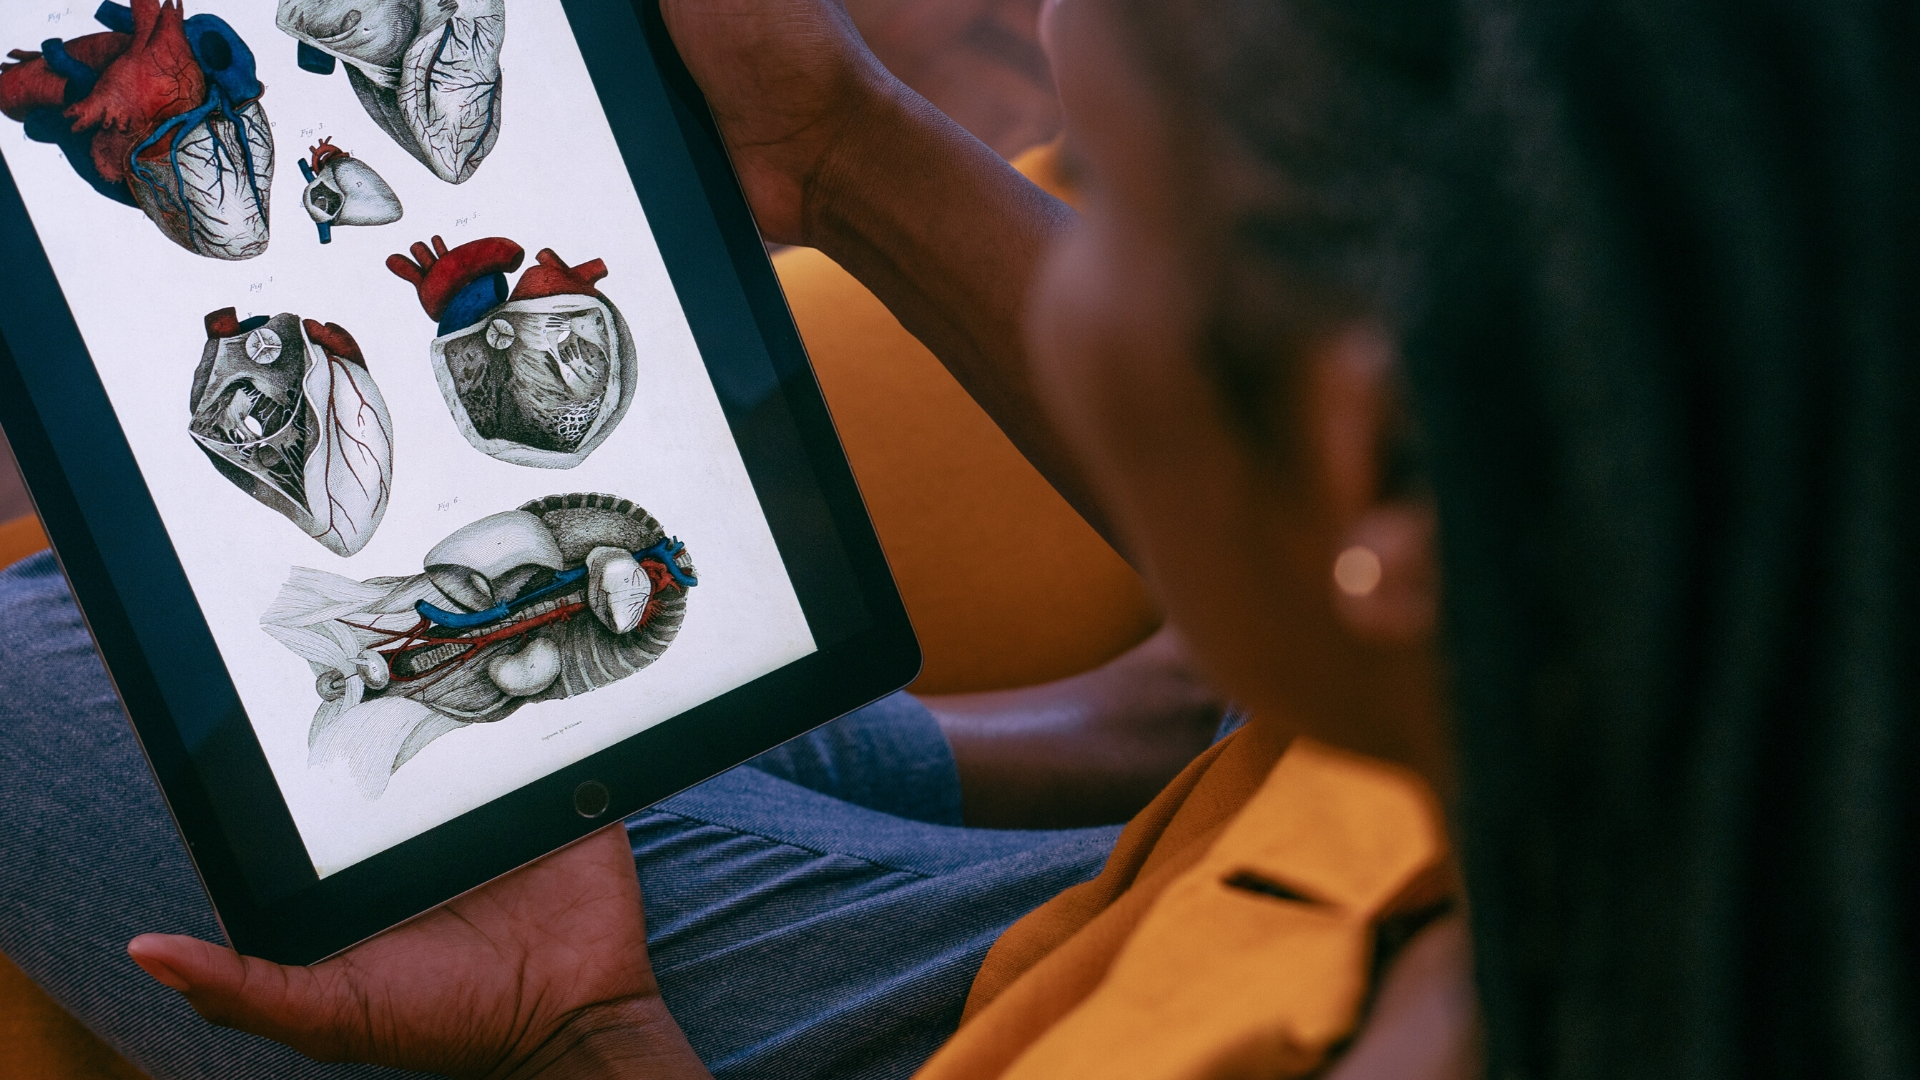 African woman on sofa looking at heart anatomy on iPad